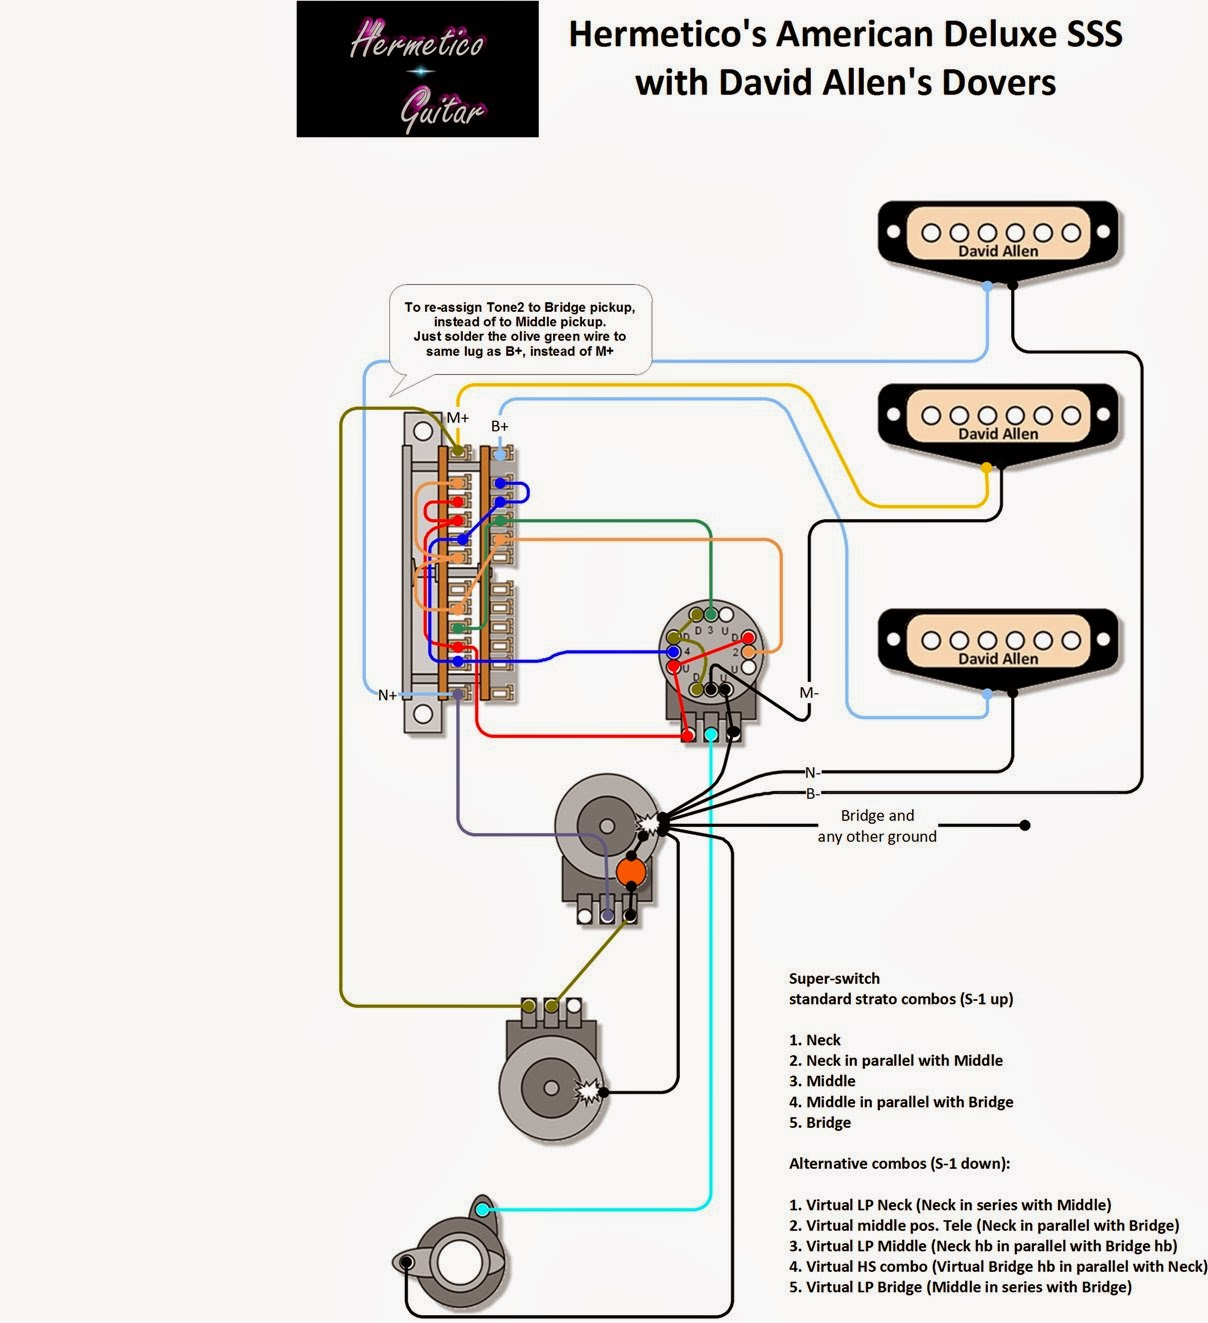 hight resolution of hermetico guitar fender american deluxe sss 2010 model fender stratocaster wiring modifications mexican strat wiring diagram